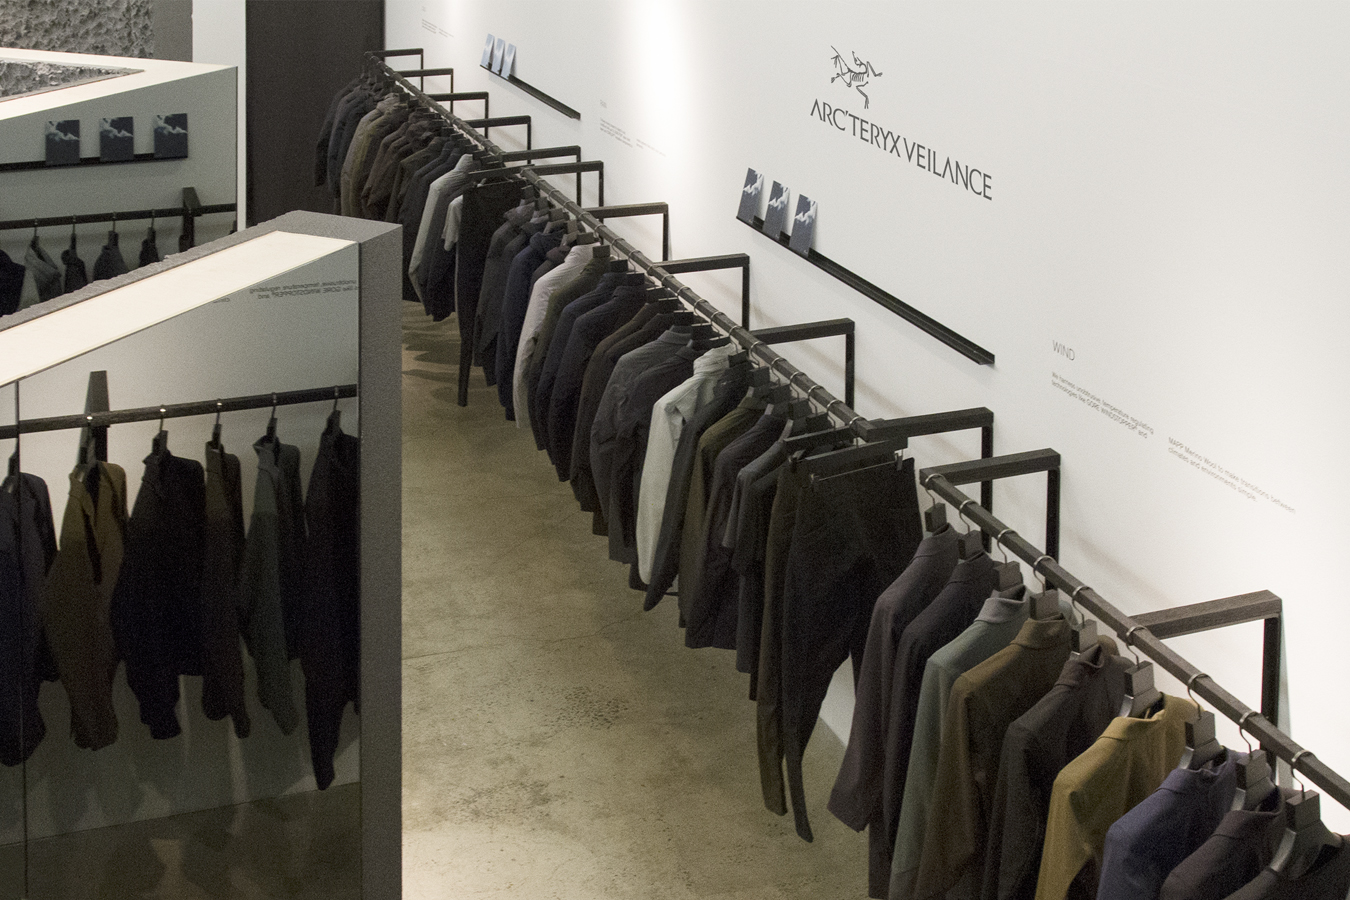 Arcteryx-Veilance-New-York-Pop-Up-Press-Image-07